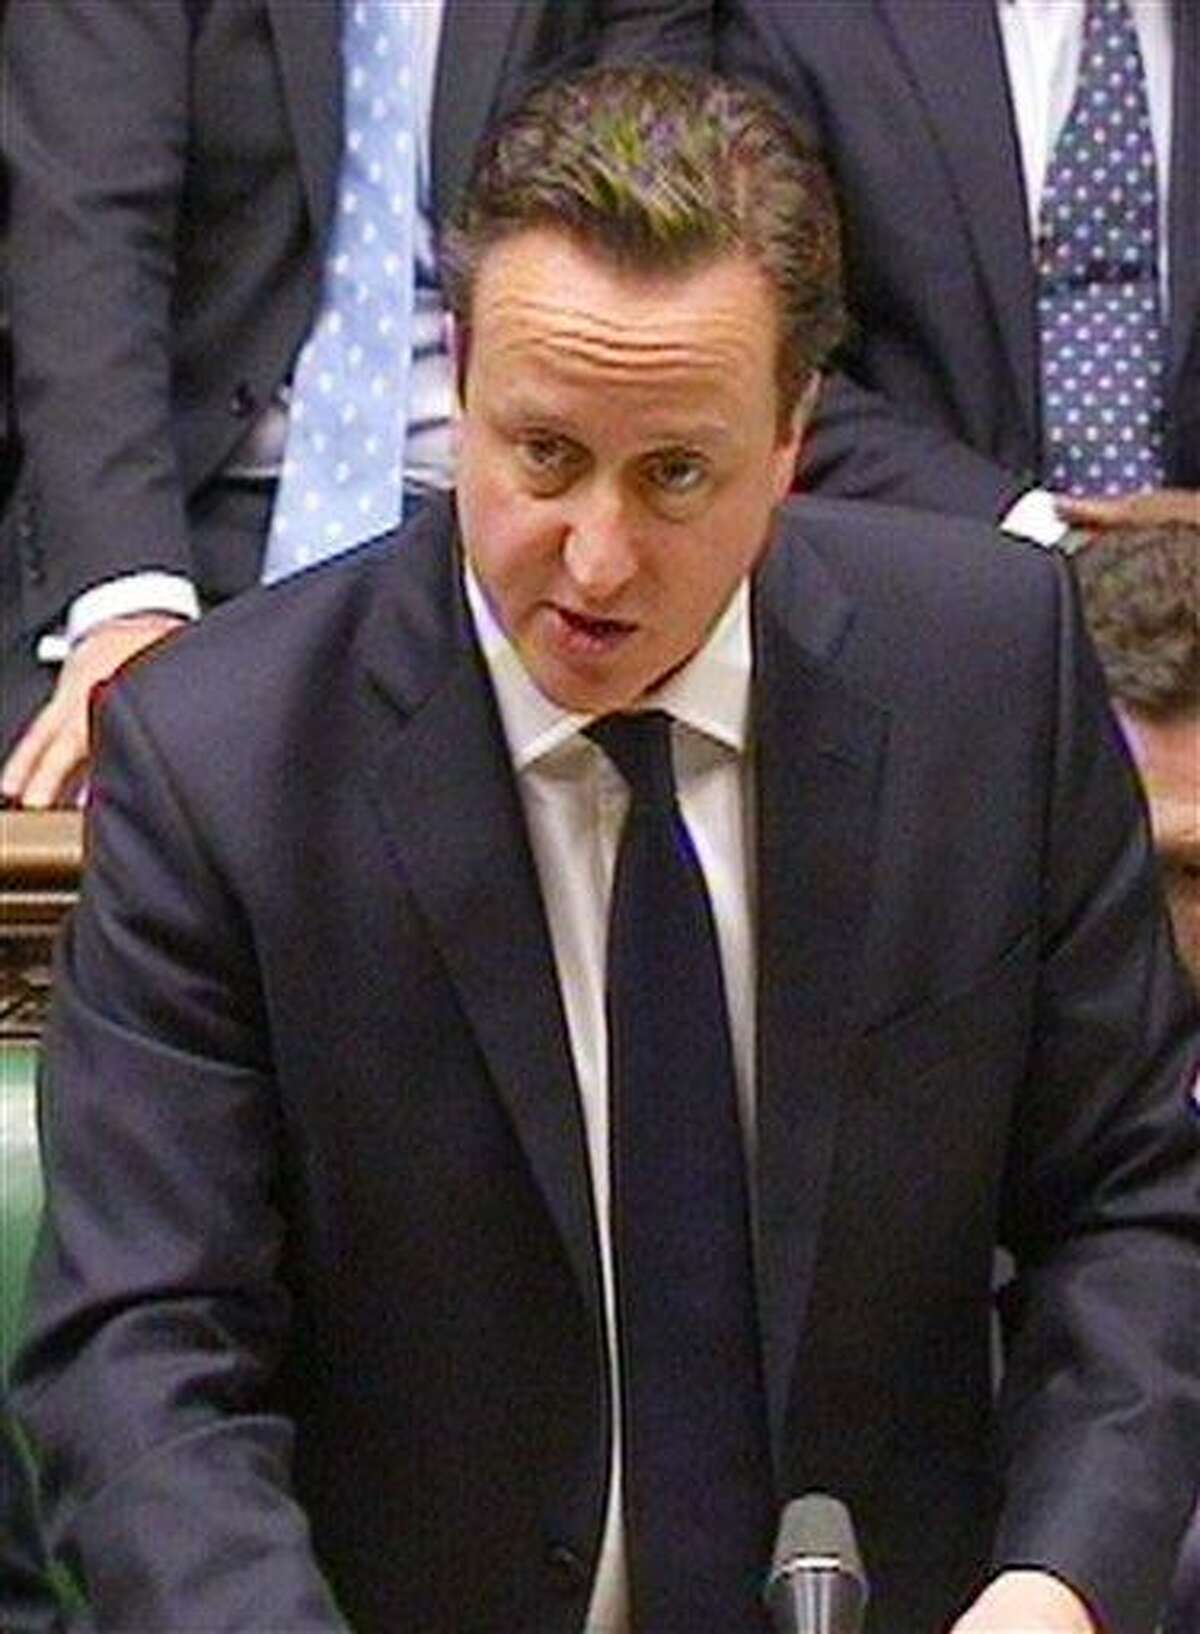 Britain's Prime Minister David Cameron speaking to the House of Commons in London in this image taken from TV Friday where the prime minister spoke about the kidnap situation in Algeria. AP Photo